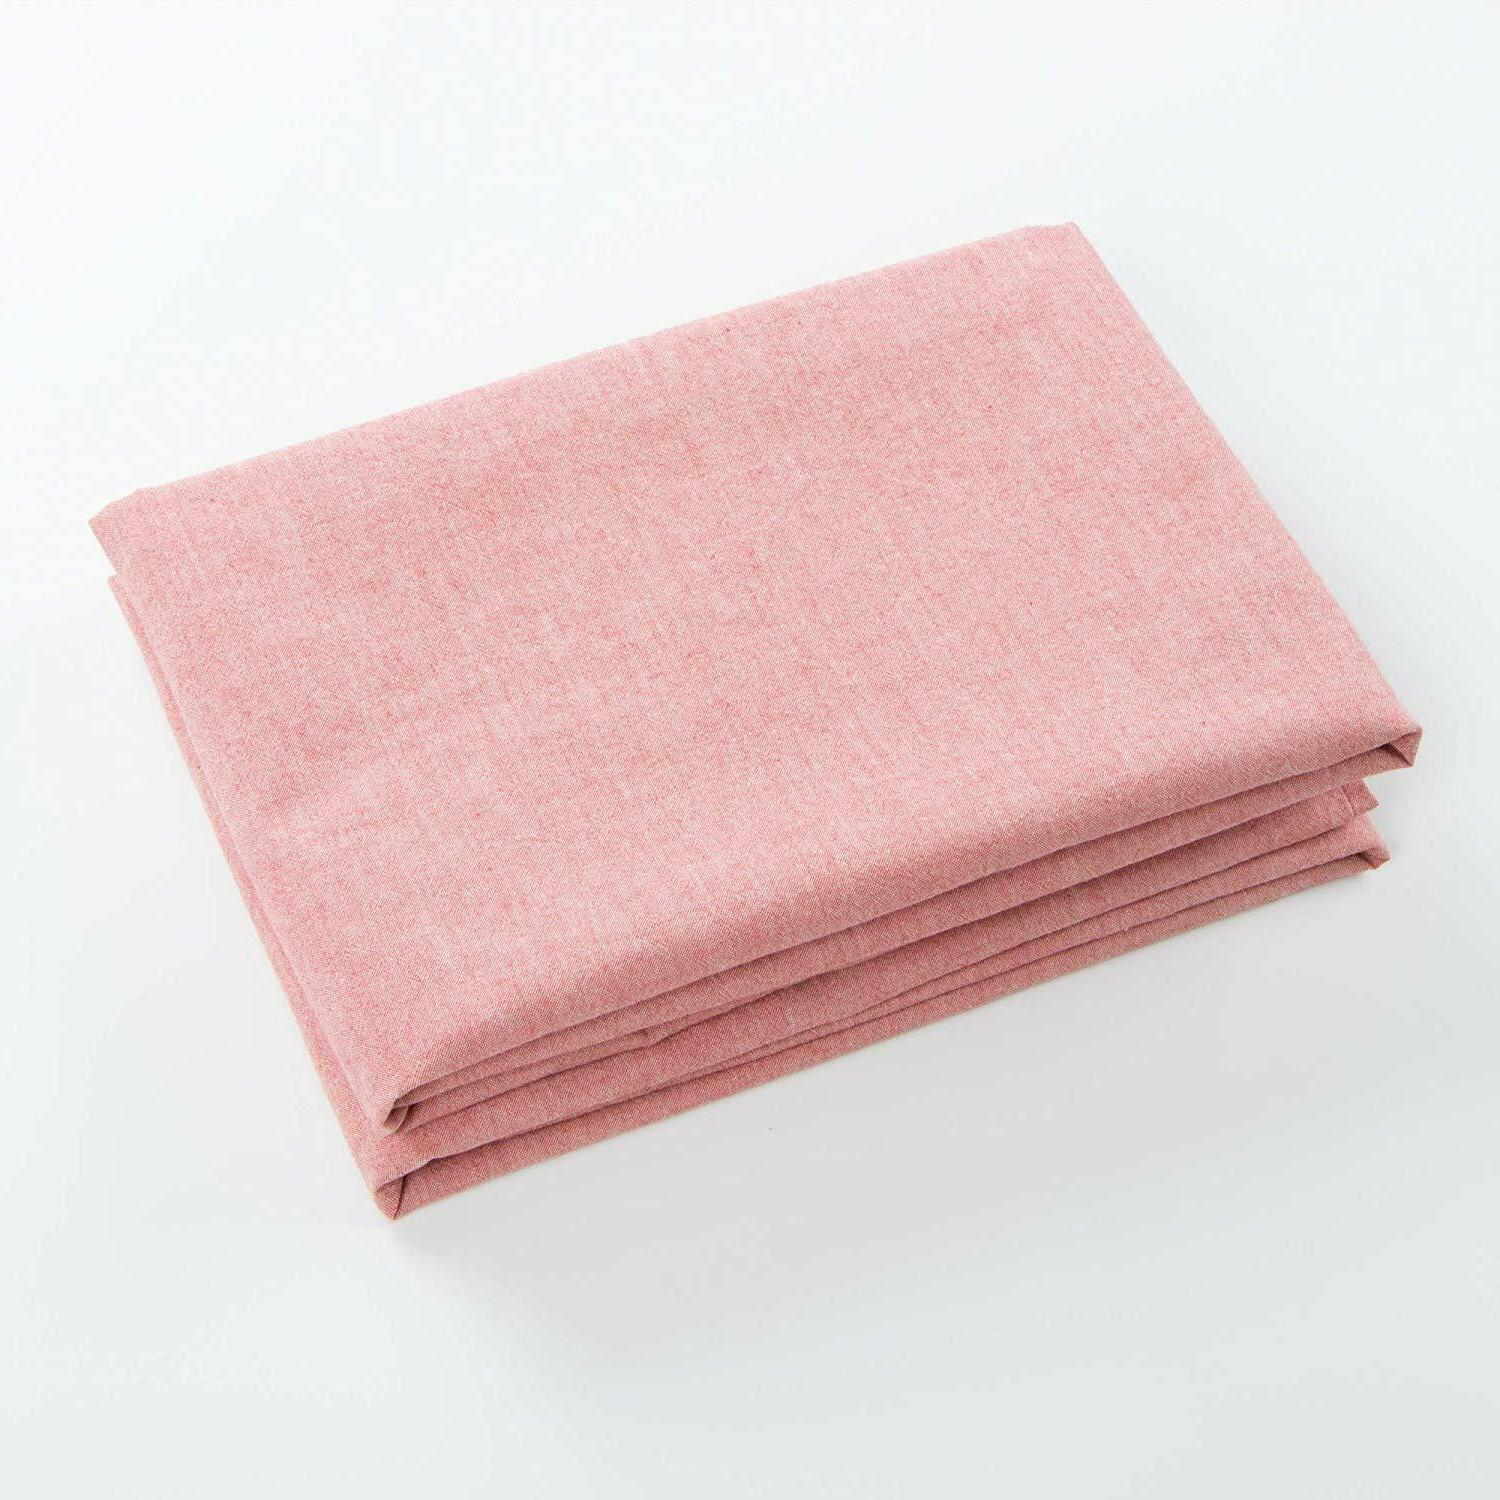 Washed Cotton Body Pillowcase 2-Pack